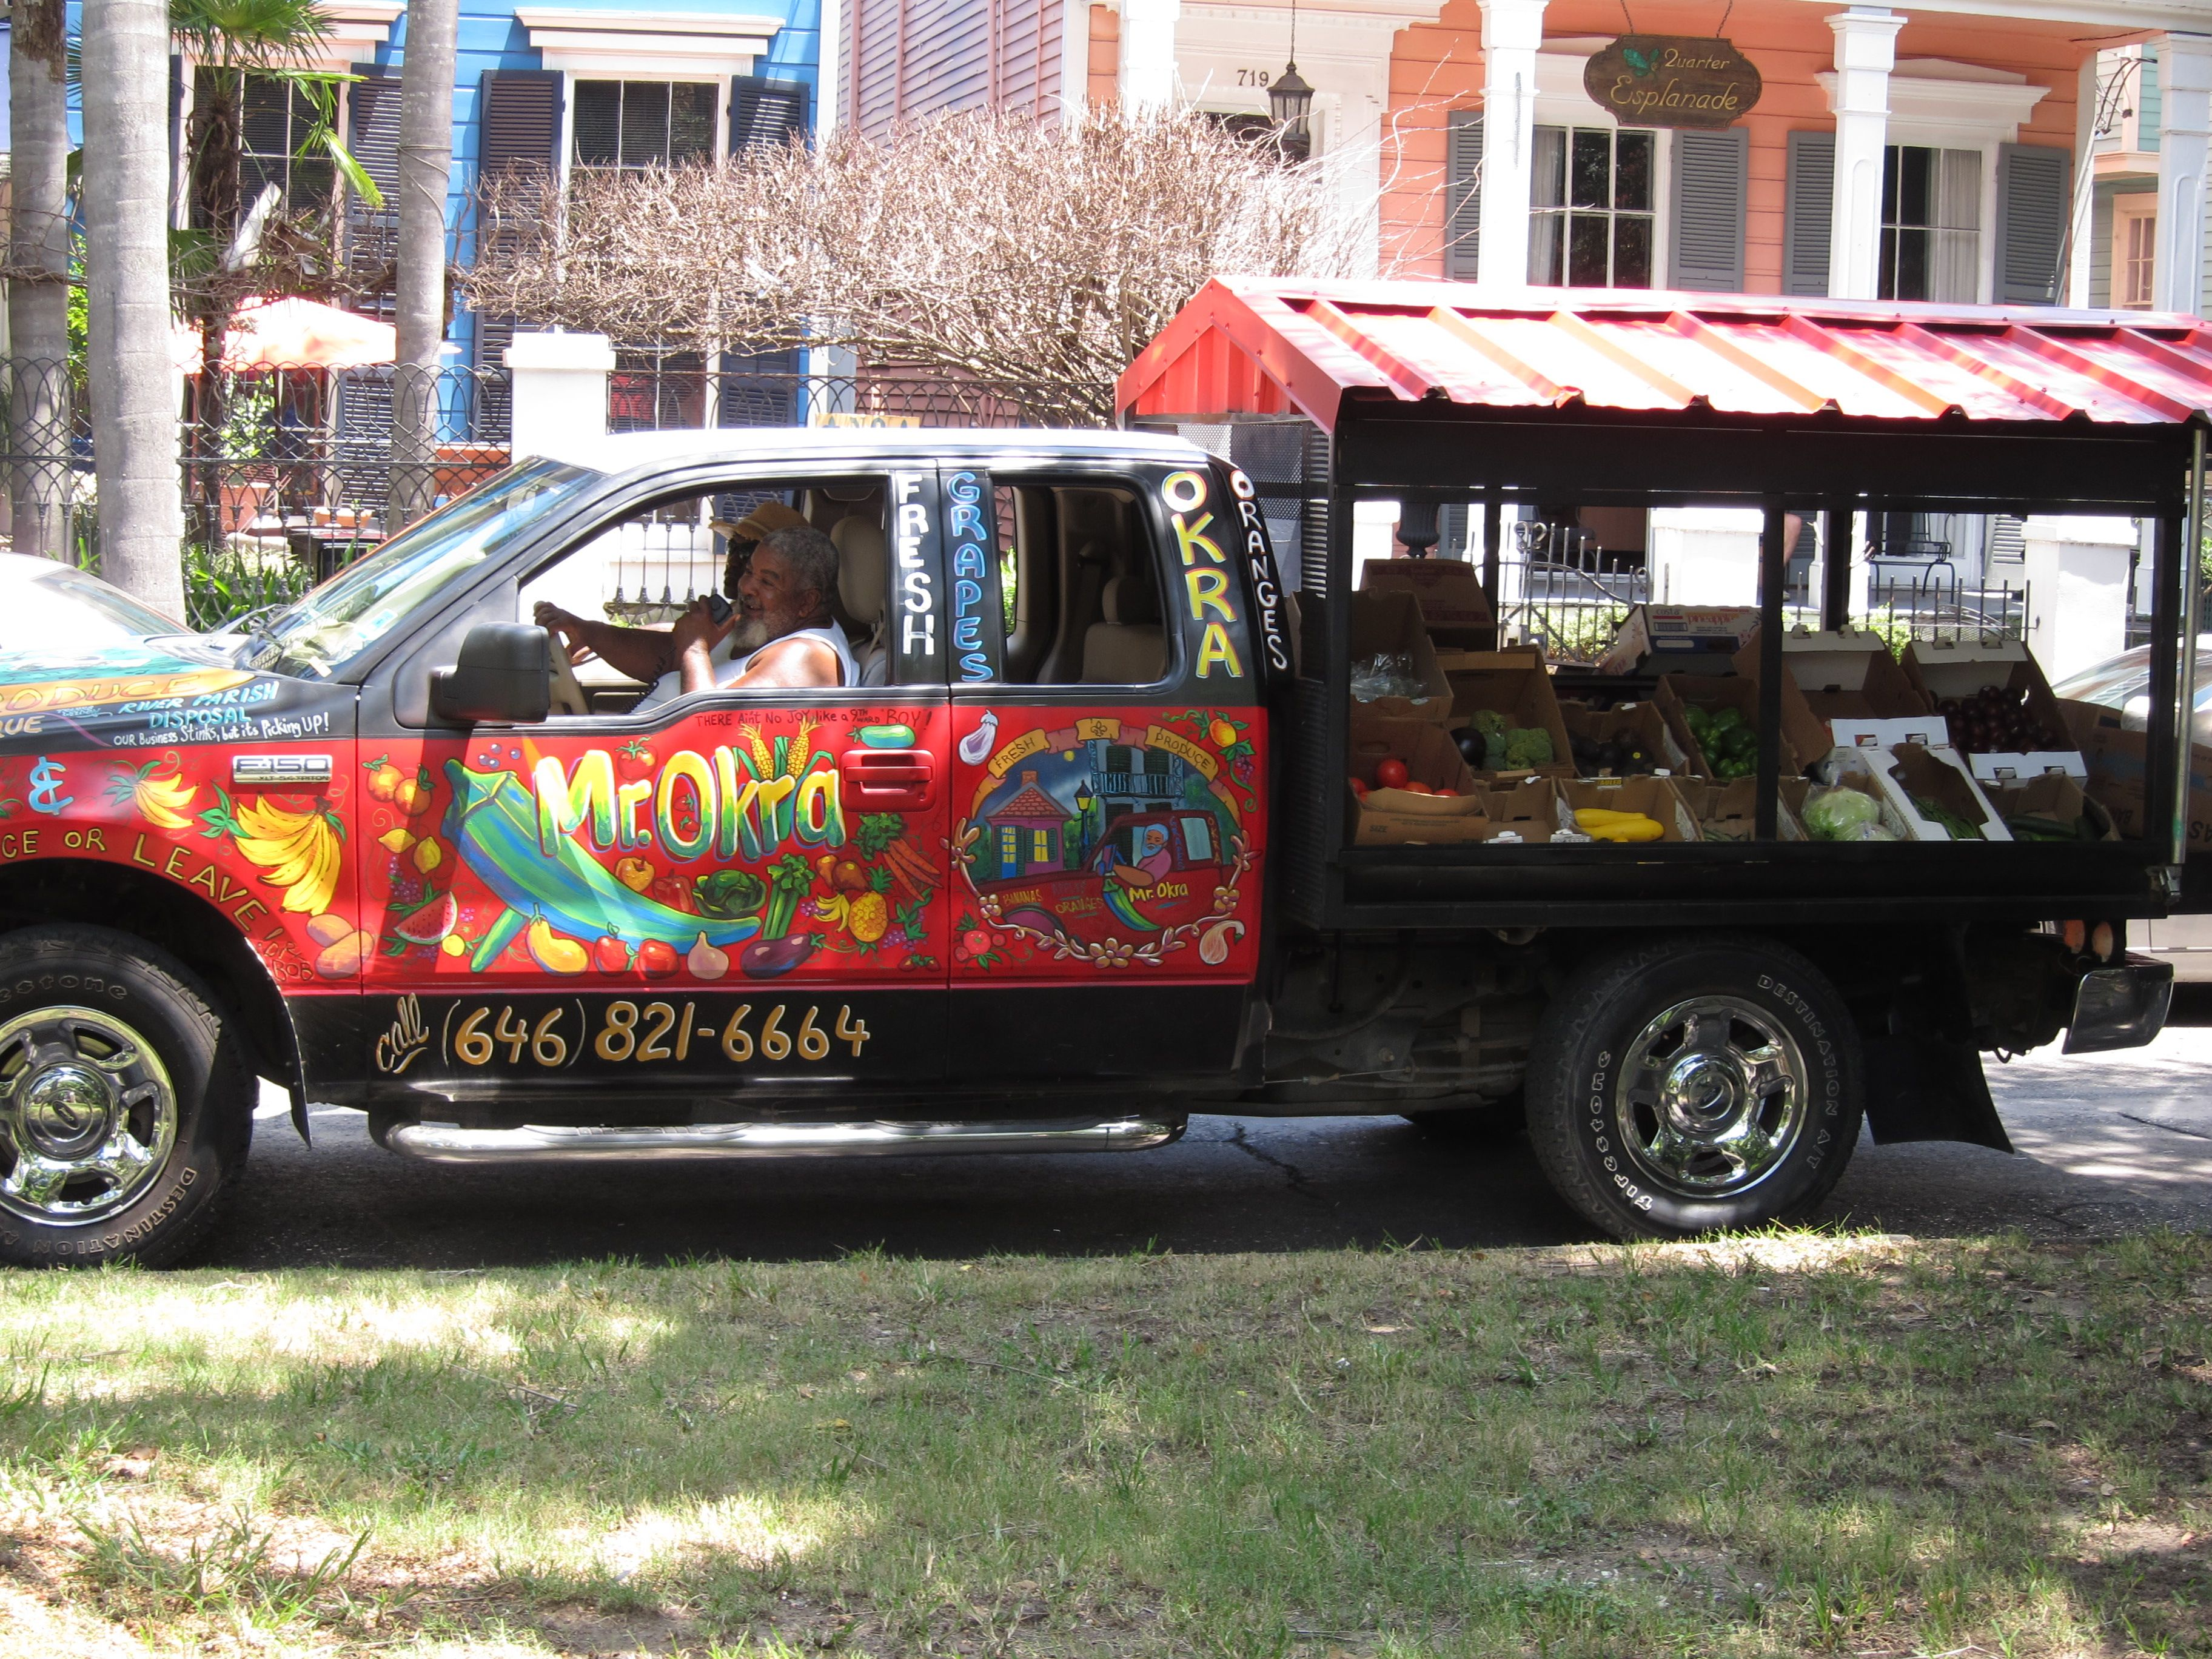 Mr. Okra - the mobile vegetable stand. I saw this guy on Larry, the Cable Guy's tv show. He's a real character. New Orleans, Louisiana